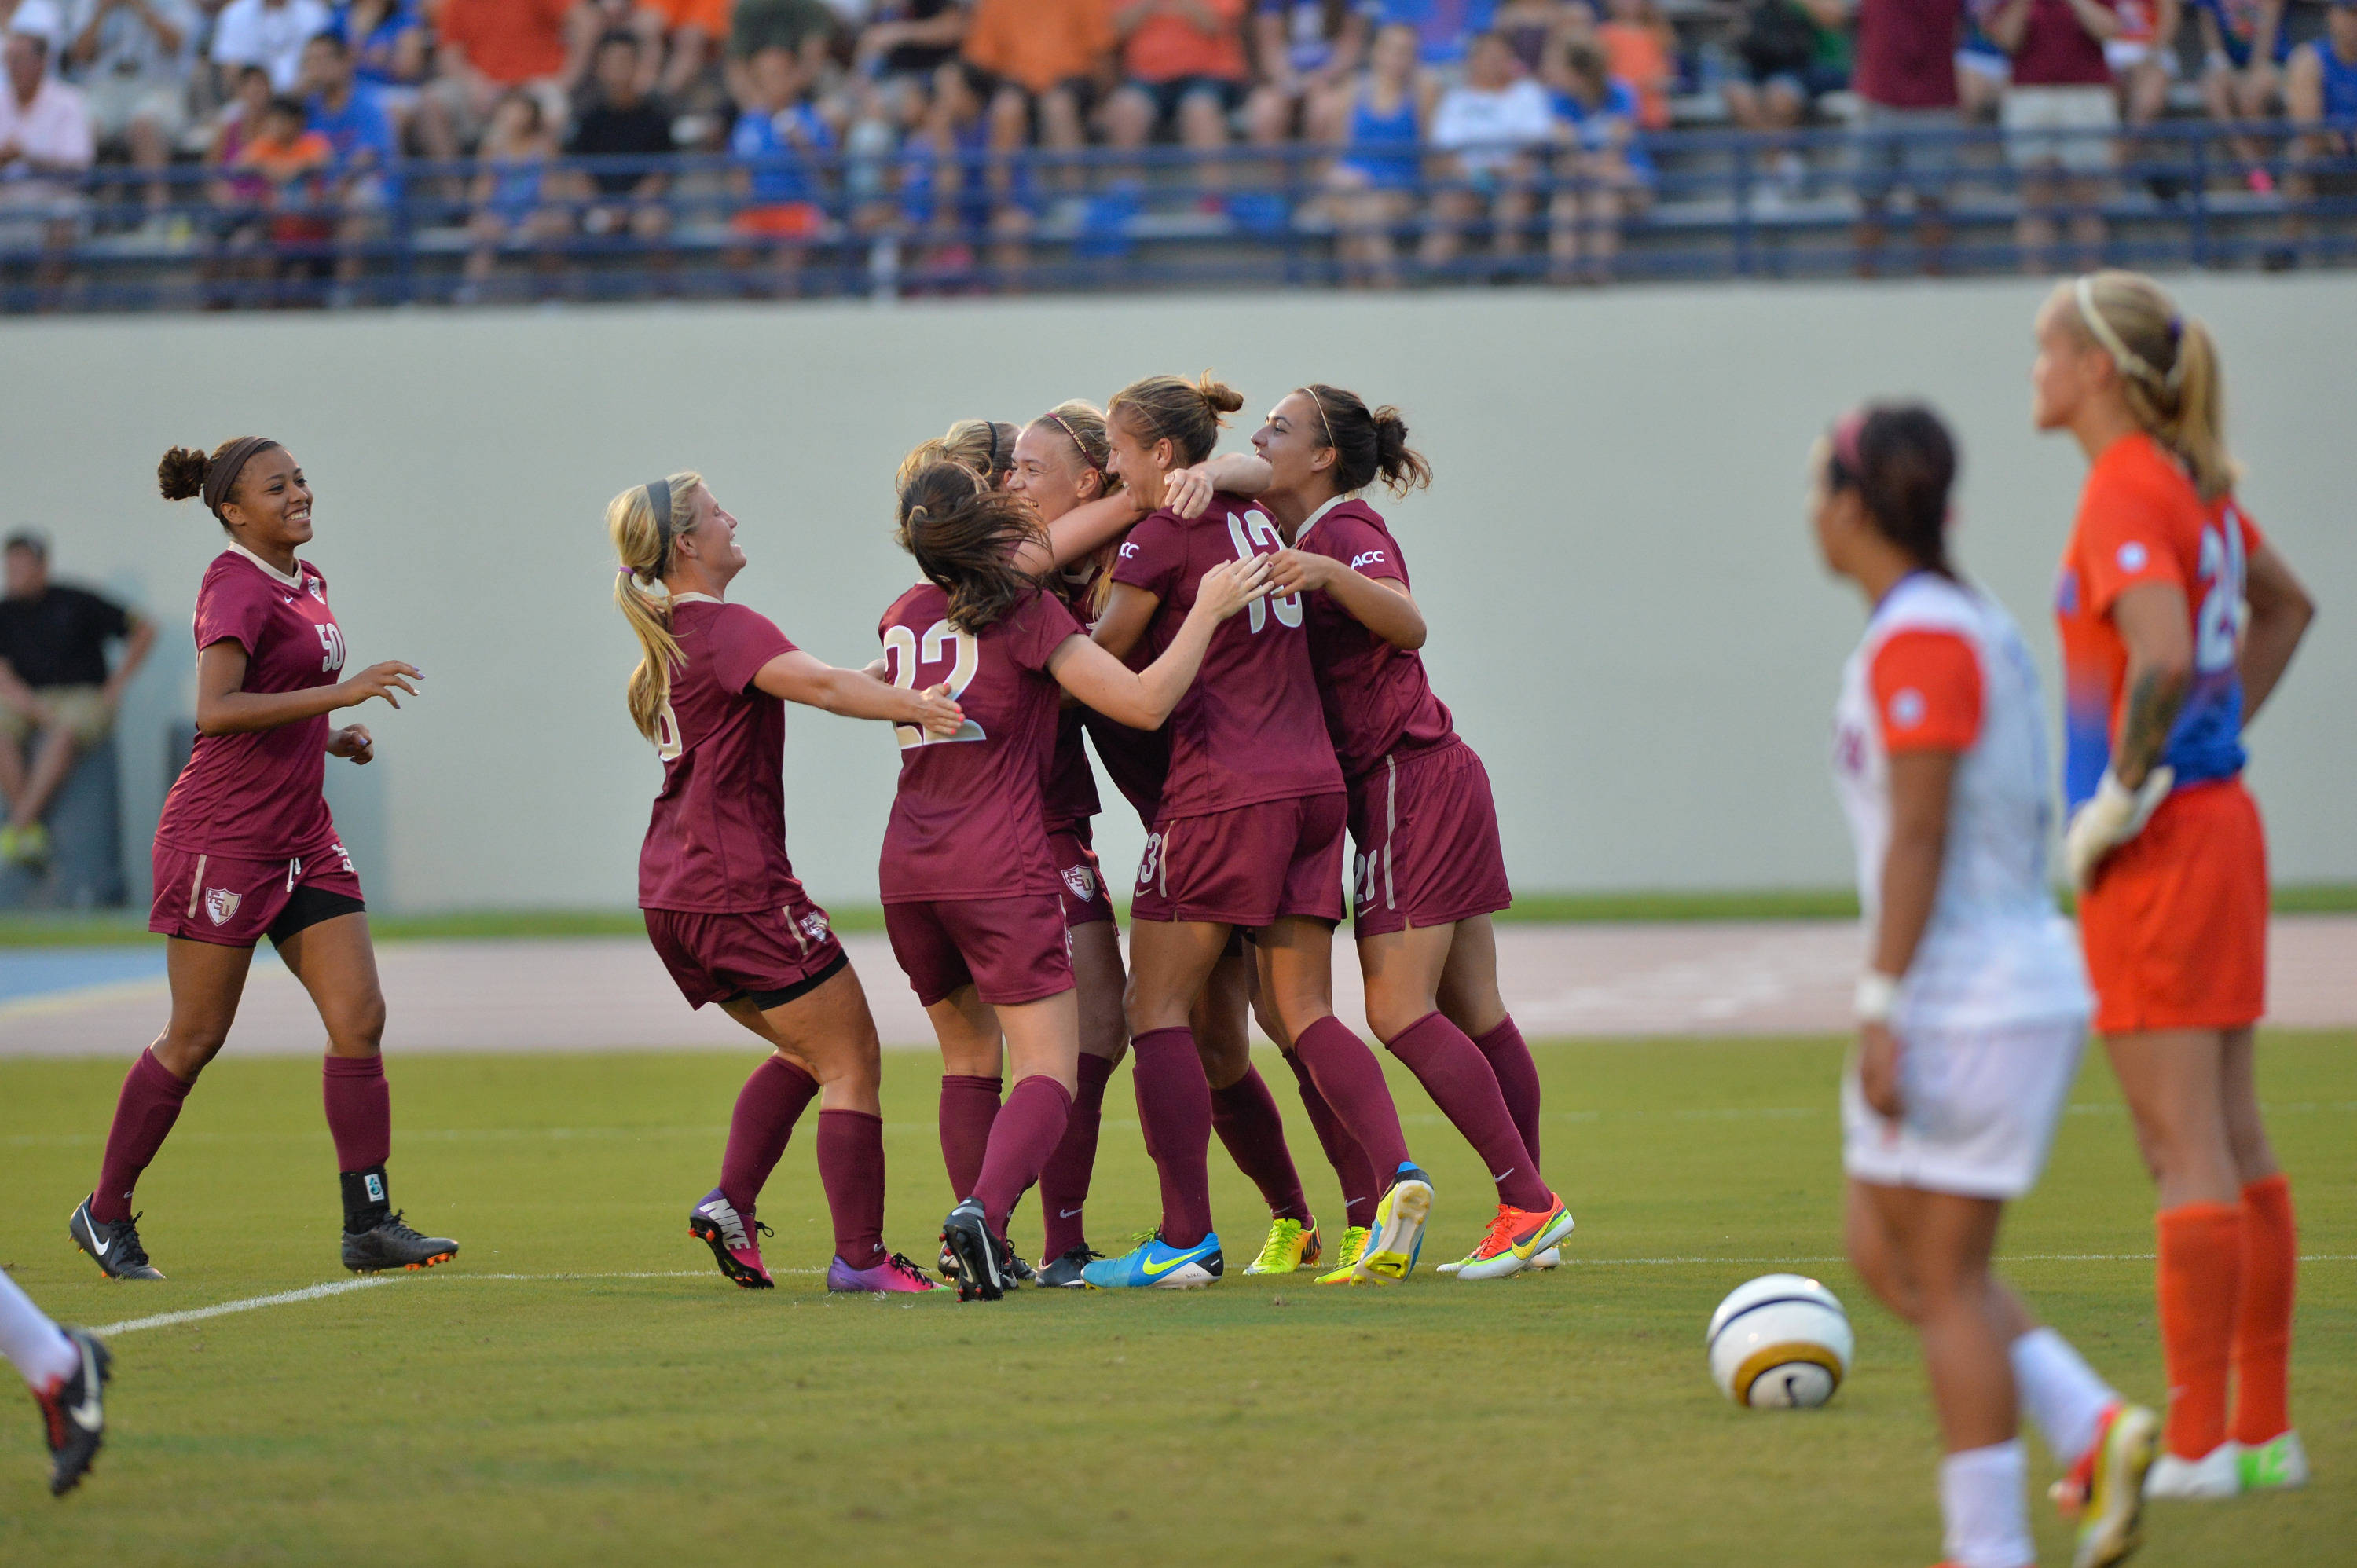 The Seminoles celebrate their second goal of the half on Friday night